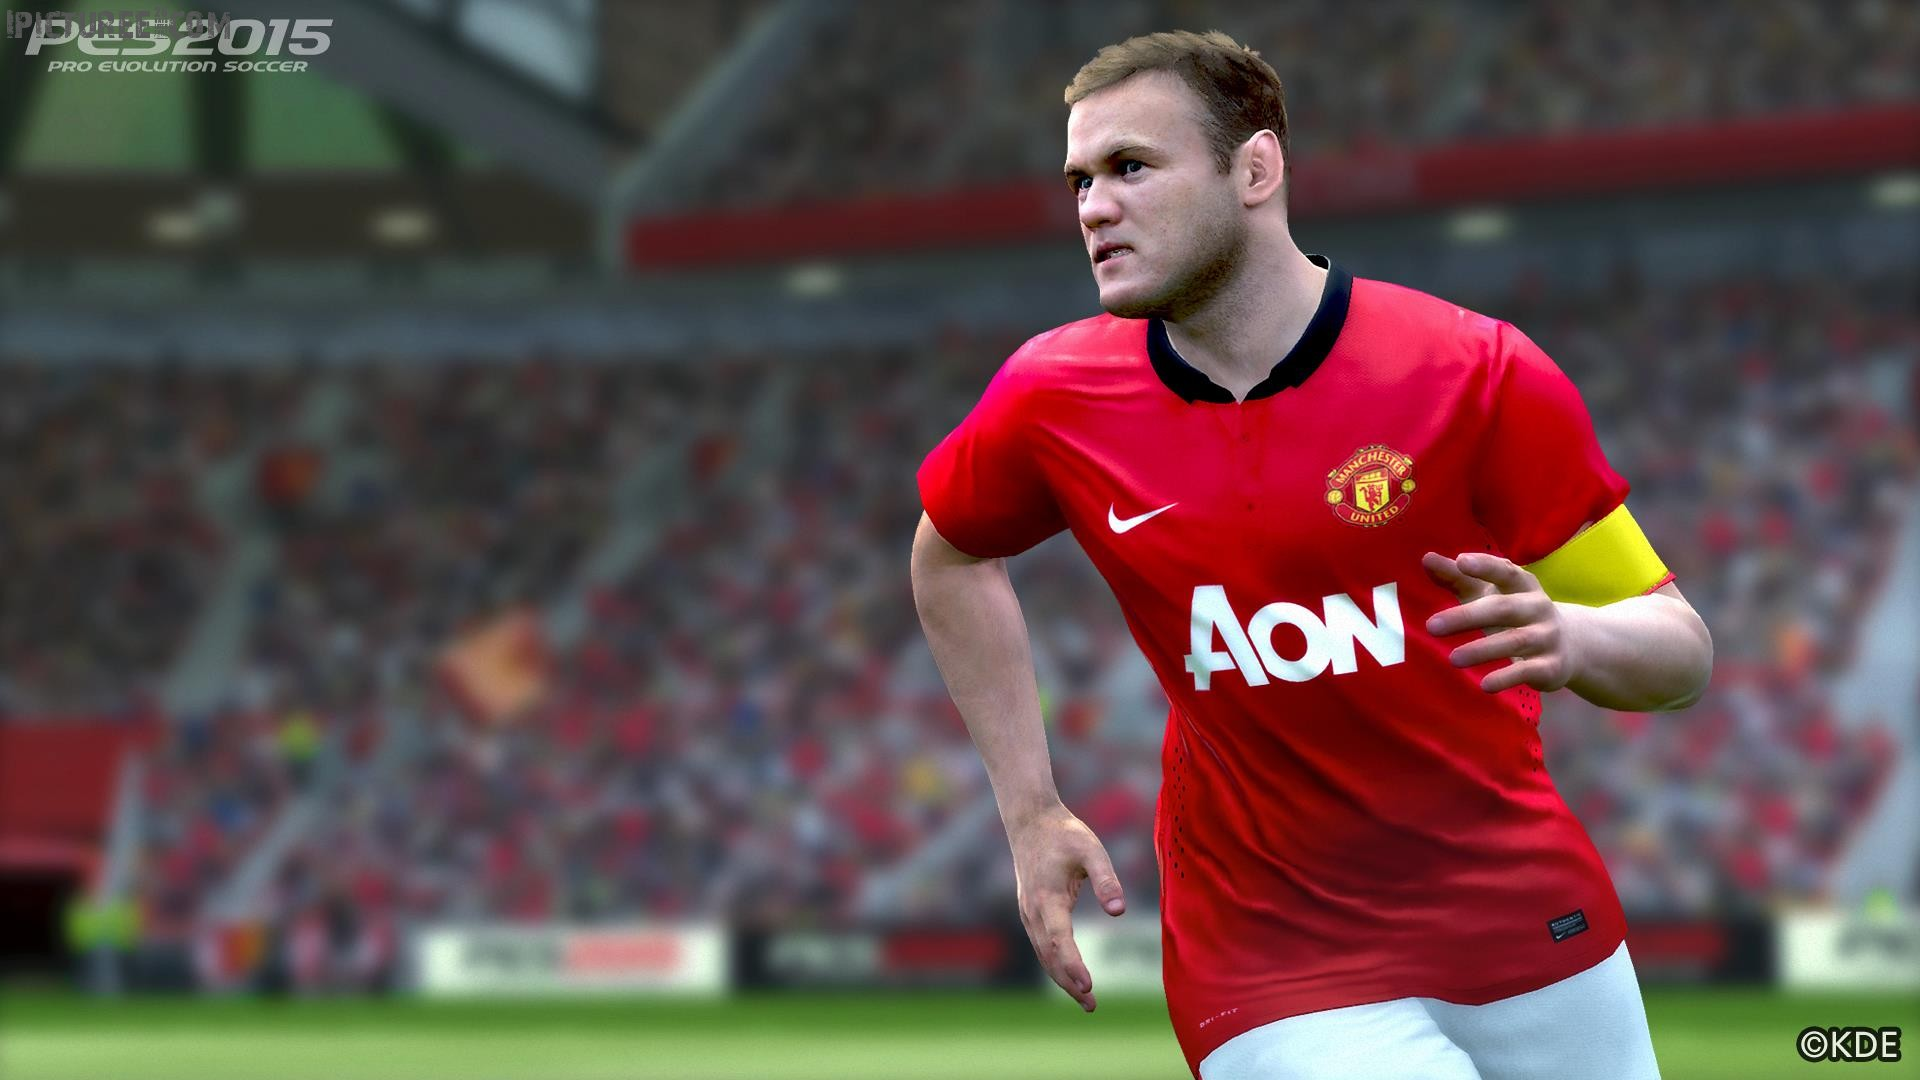 Wayne Rooney Fifa 2015 screenshot